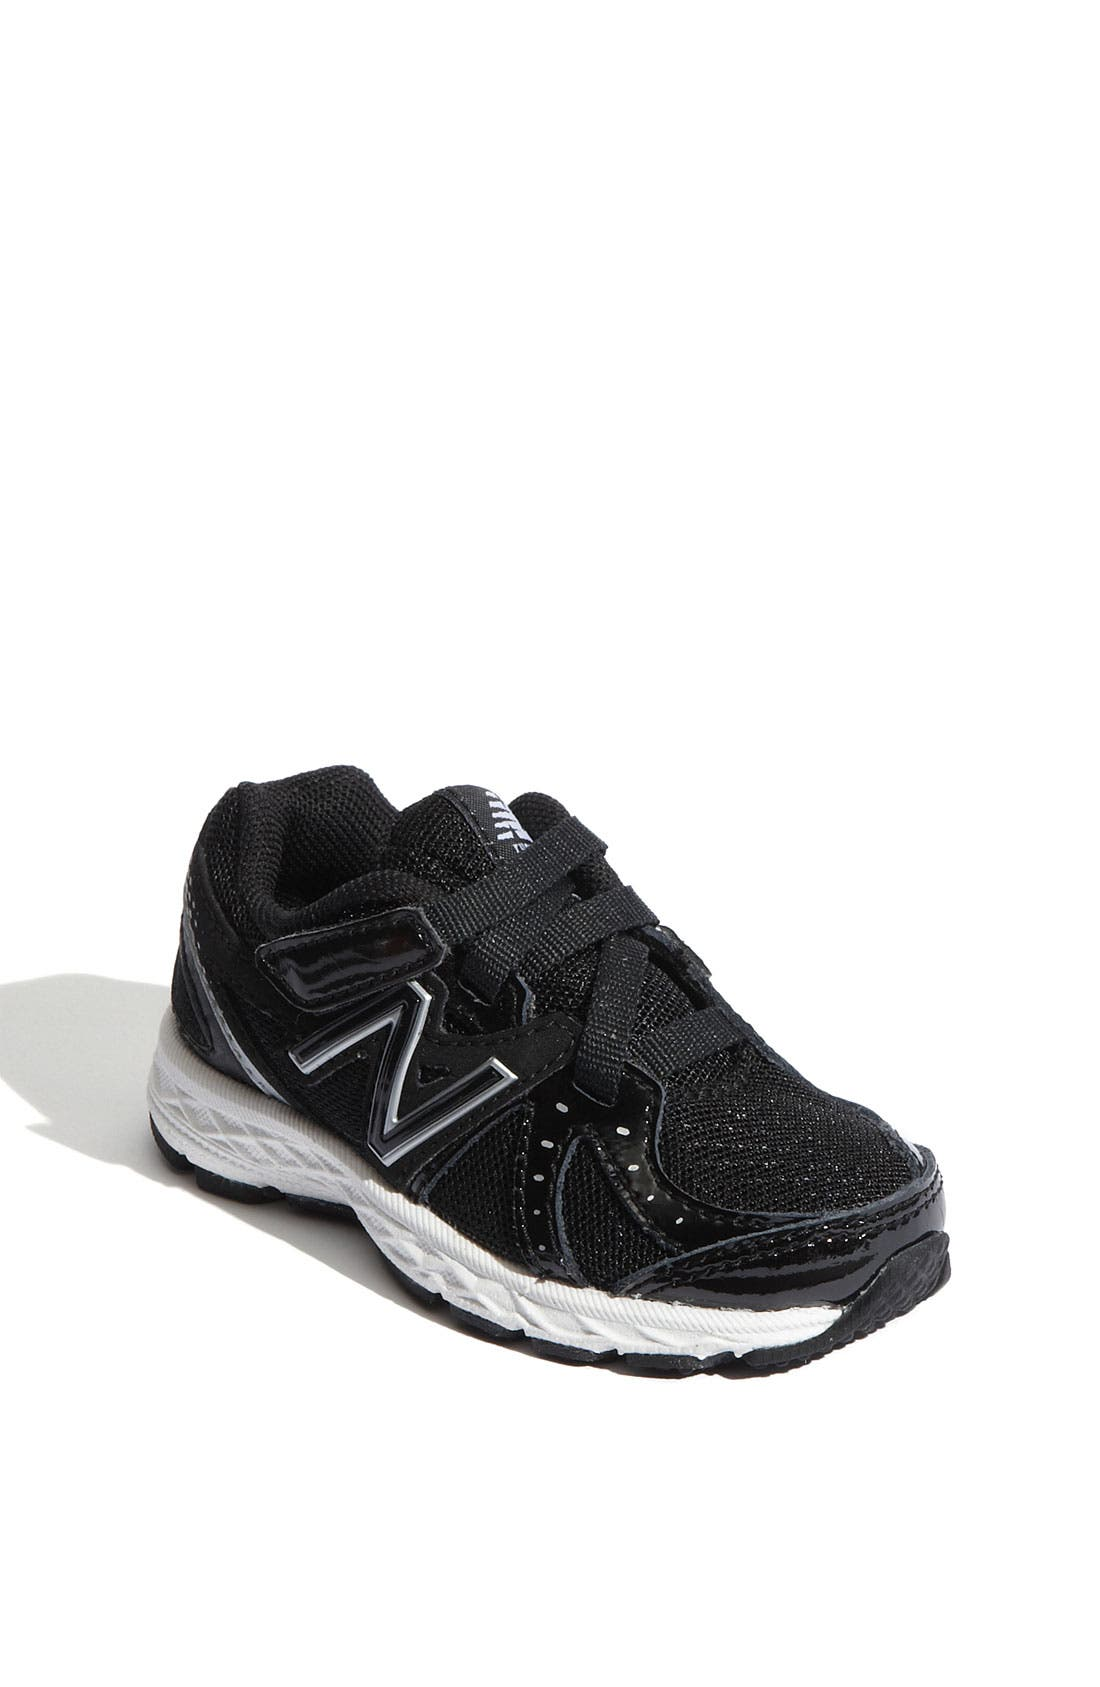 Main Image - New Balance '790' Running Shoe (Baby, Walker & Toddler)